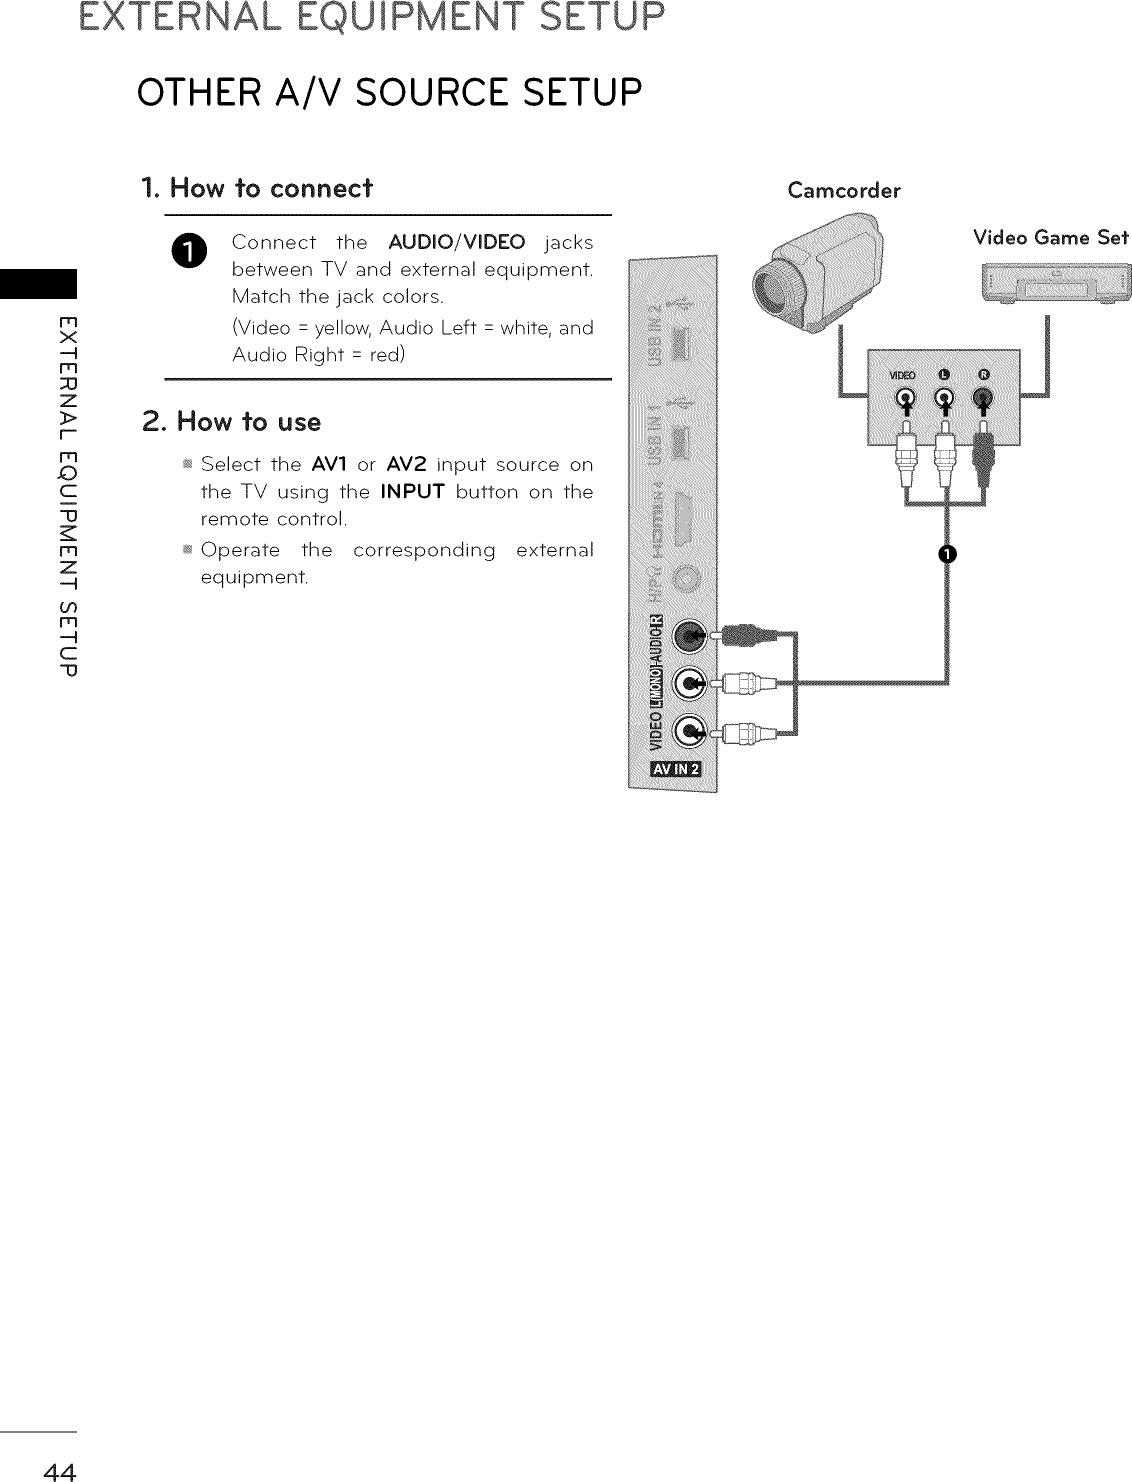 Page 44 of 92 - LG LCD Television Manual L1003283